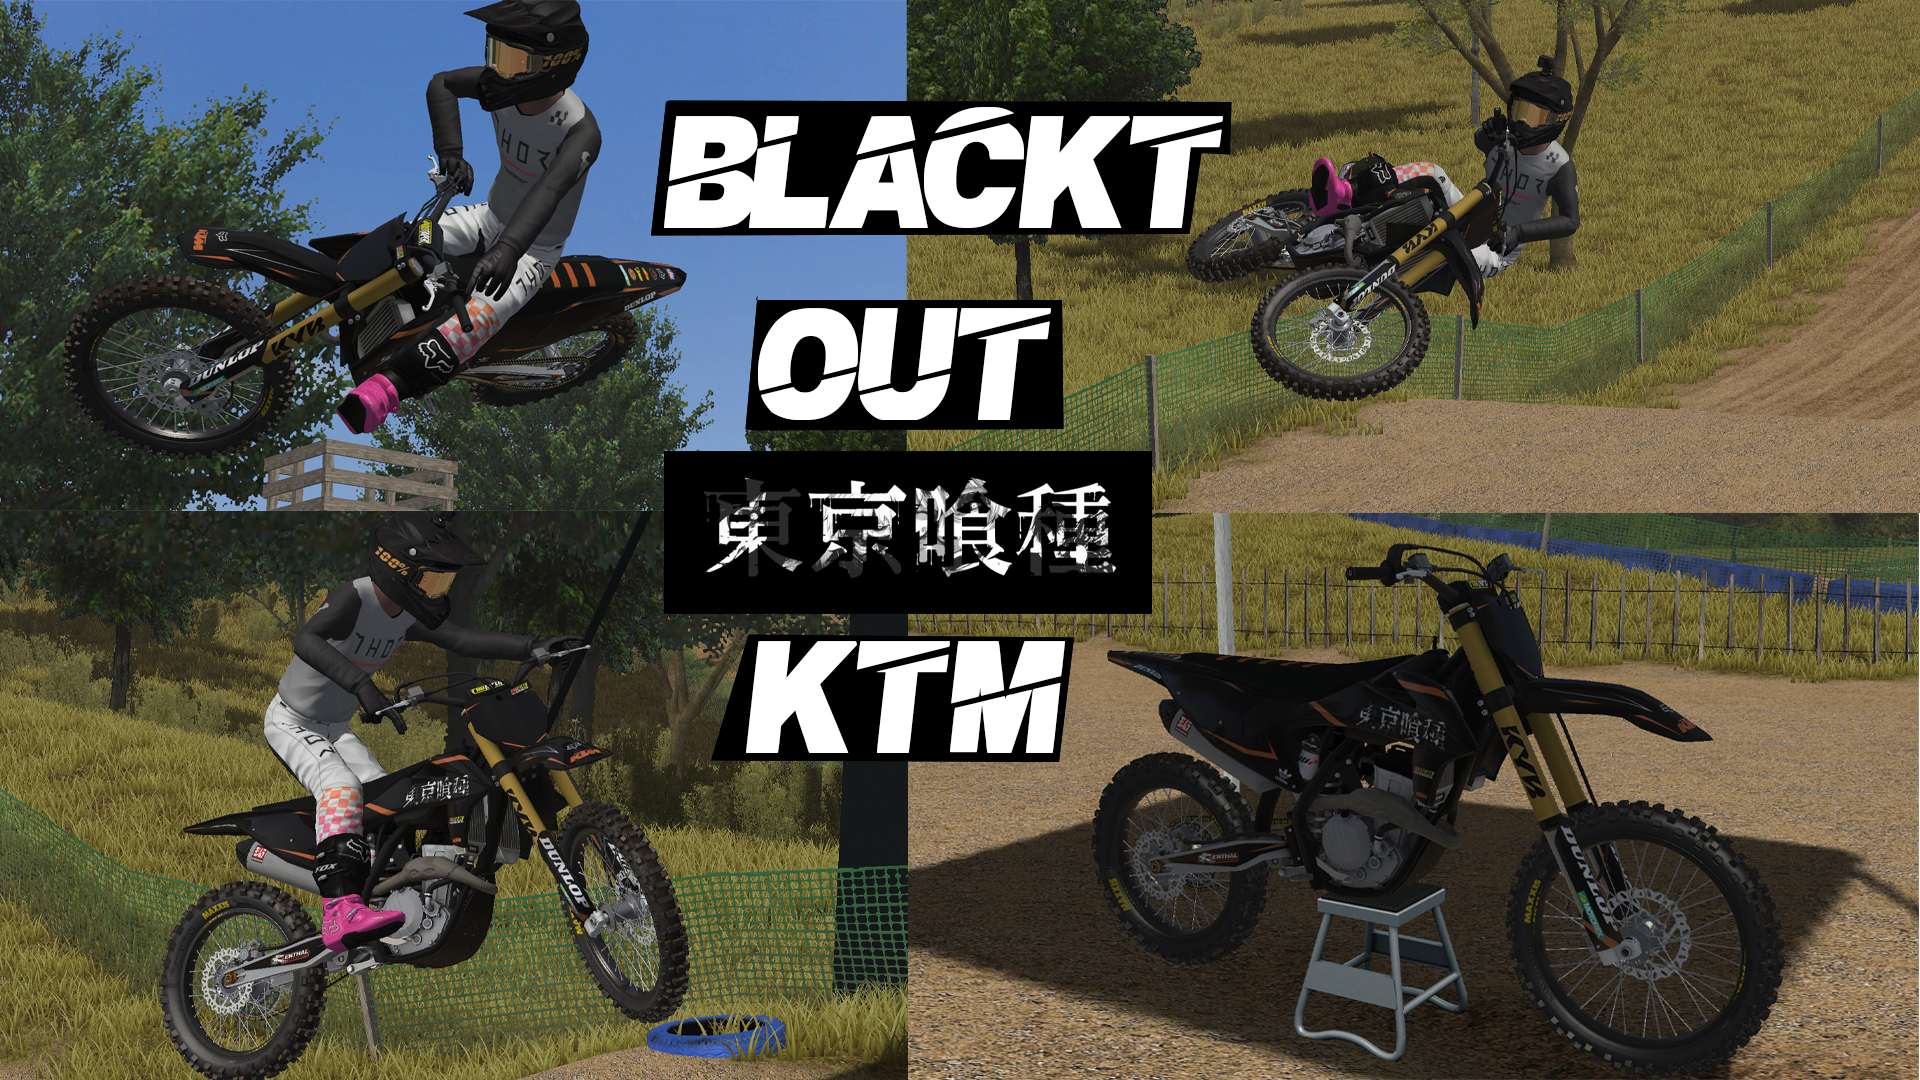 Blackt Out Kanji KTM